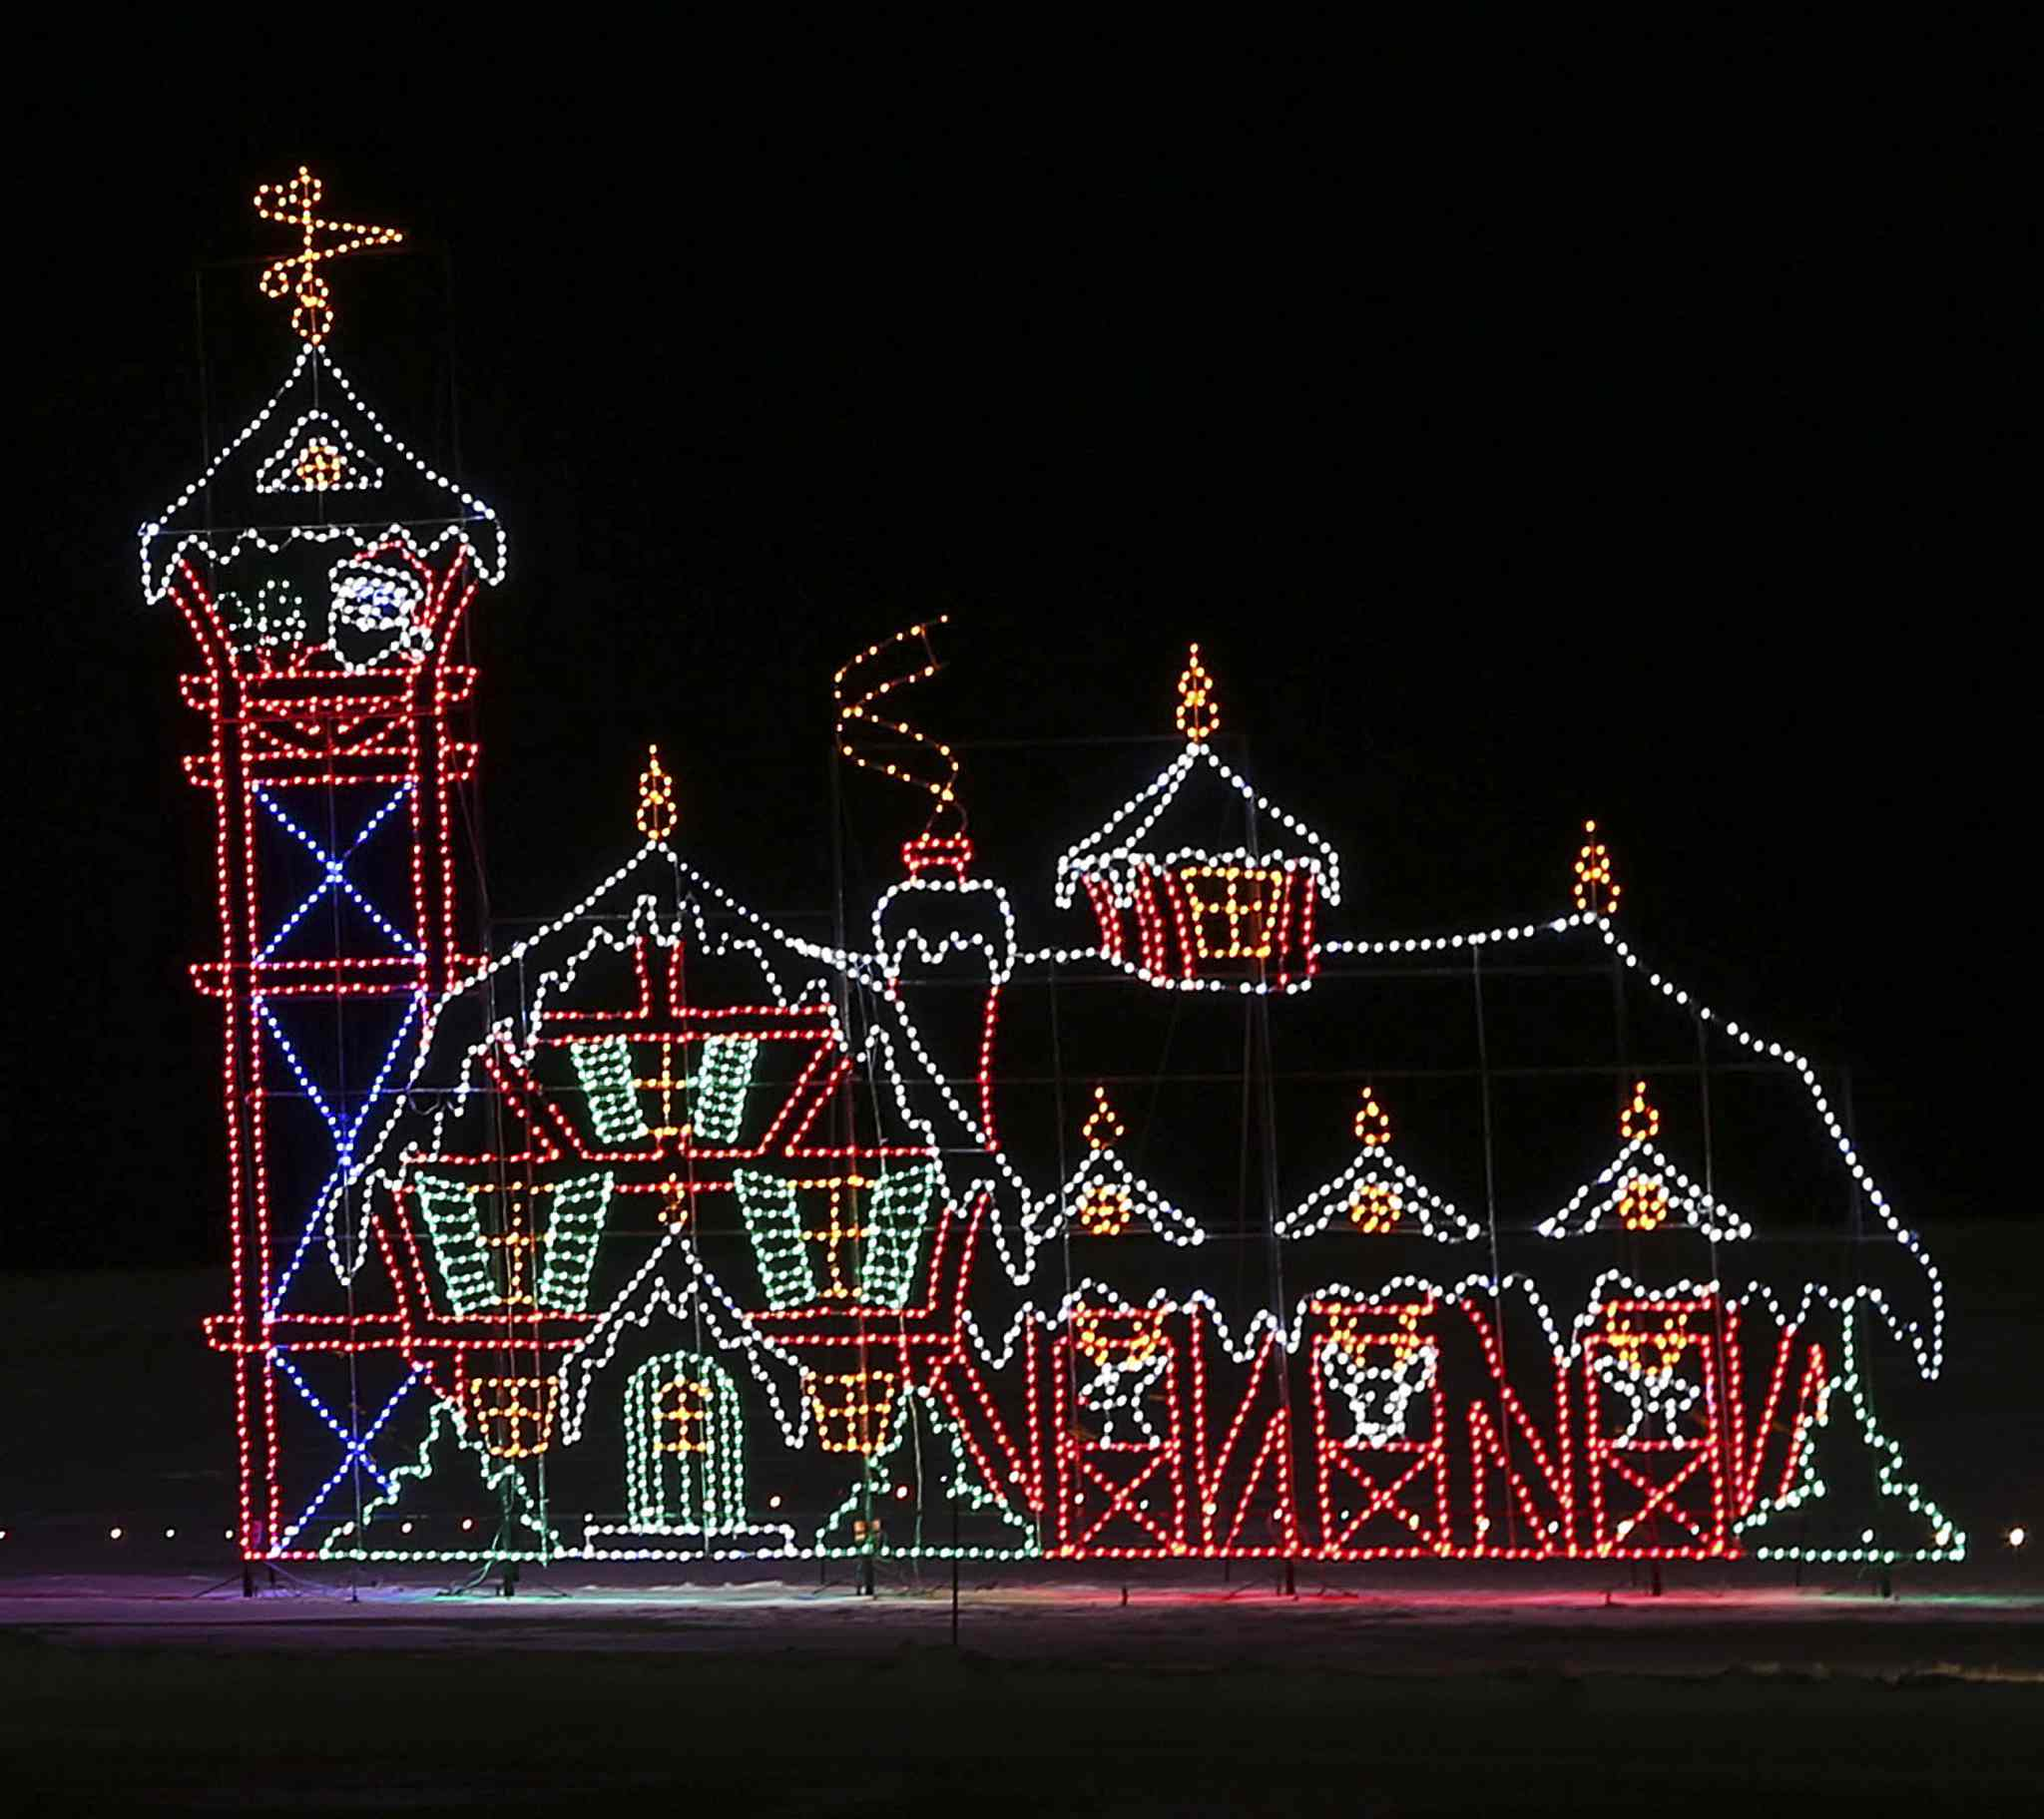 An illuminated Santa Claus waves to visitors from the tower of a building made of lights.